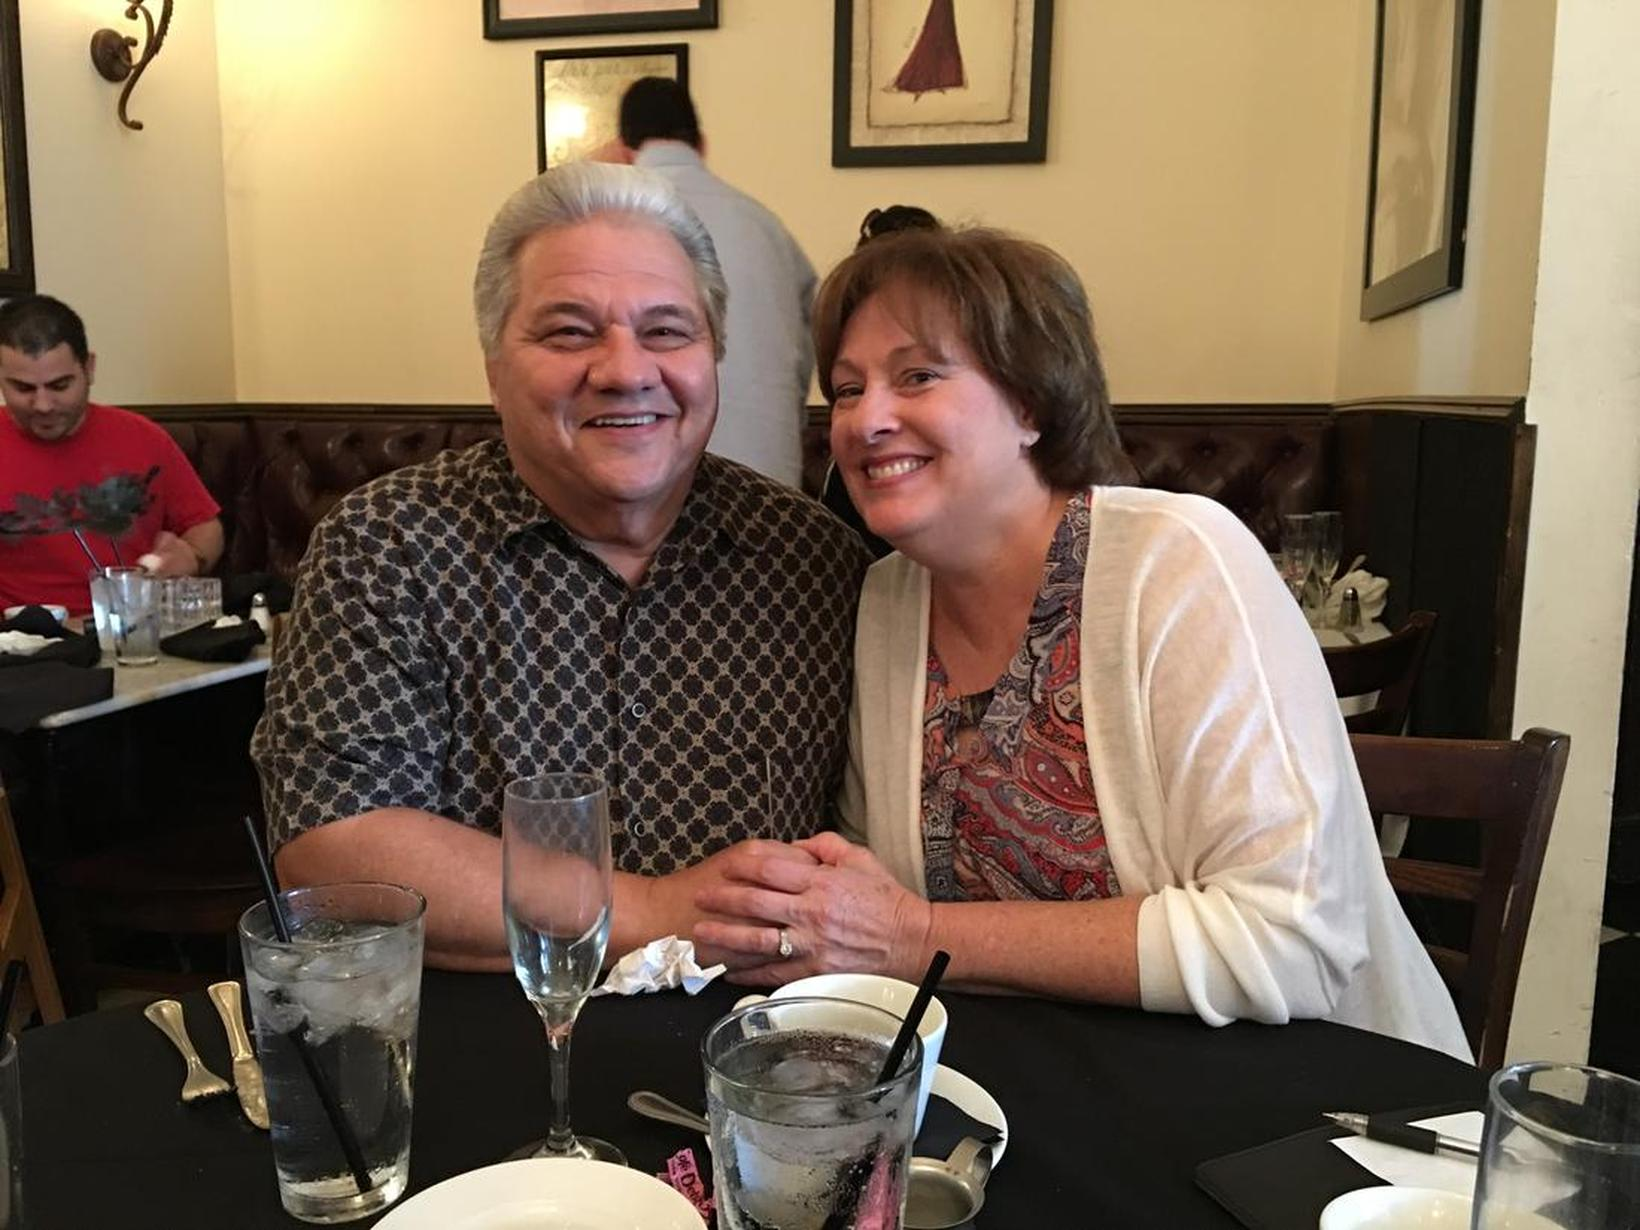 Robert & Anne from Frisco, Texas, United States